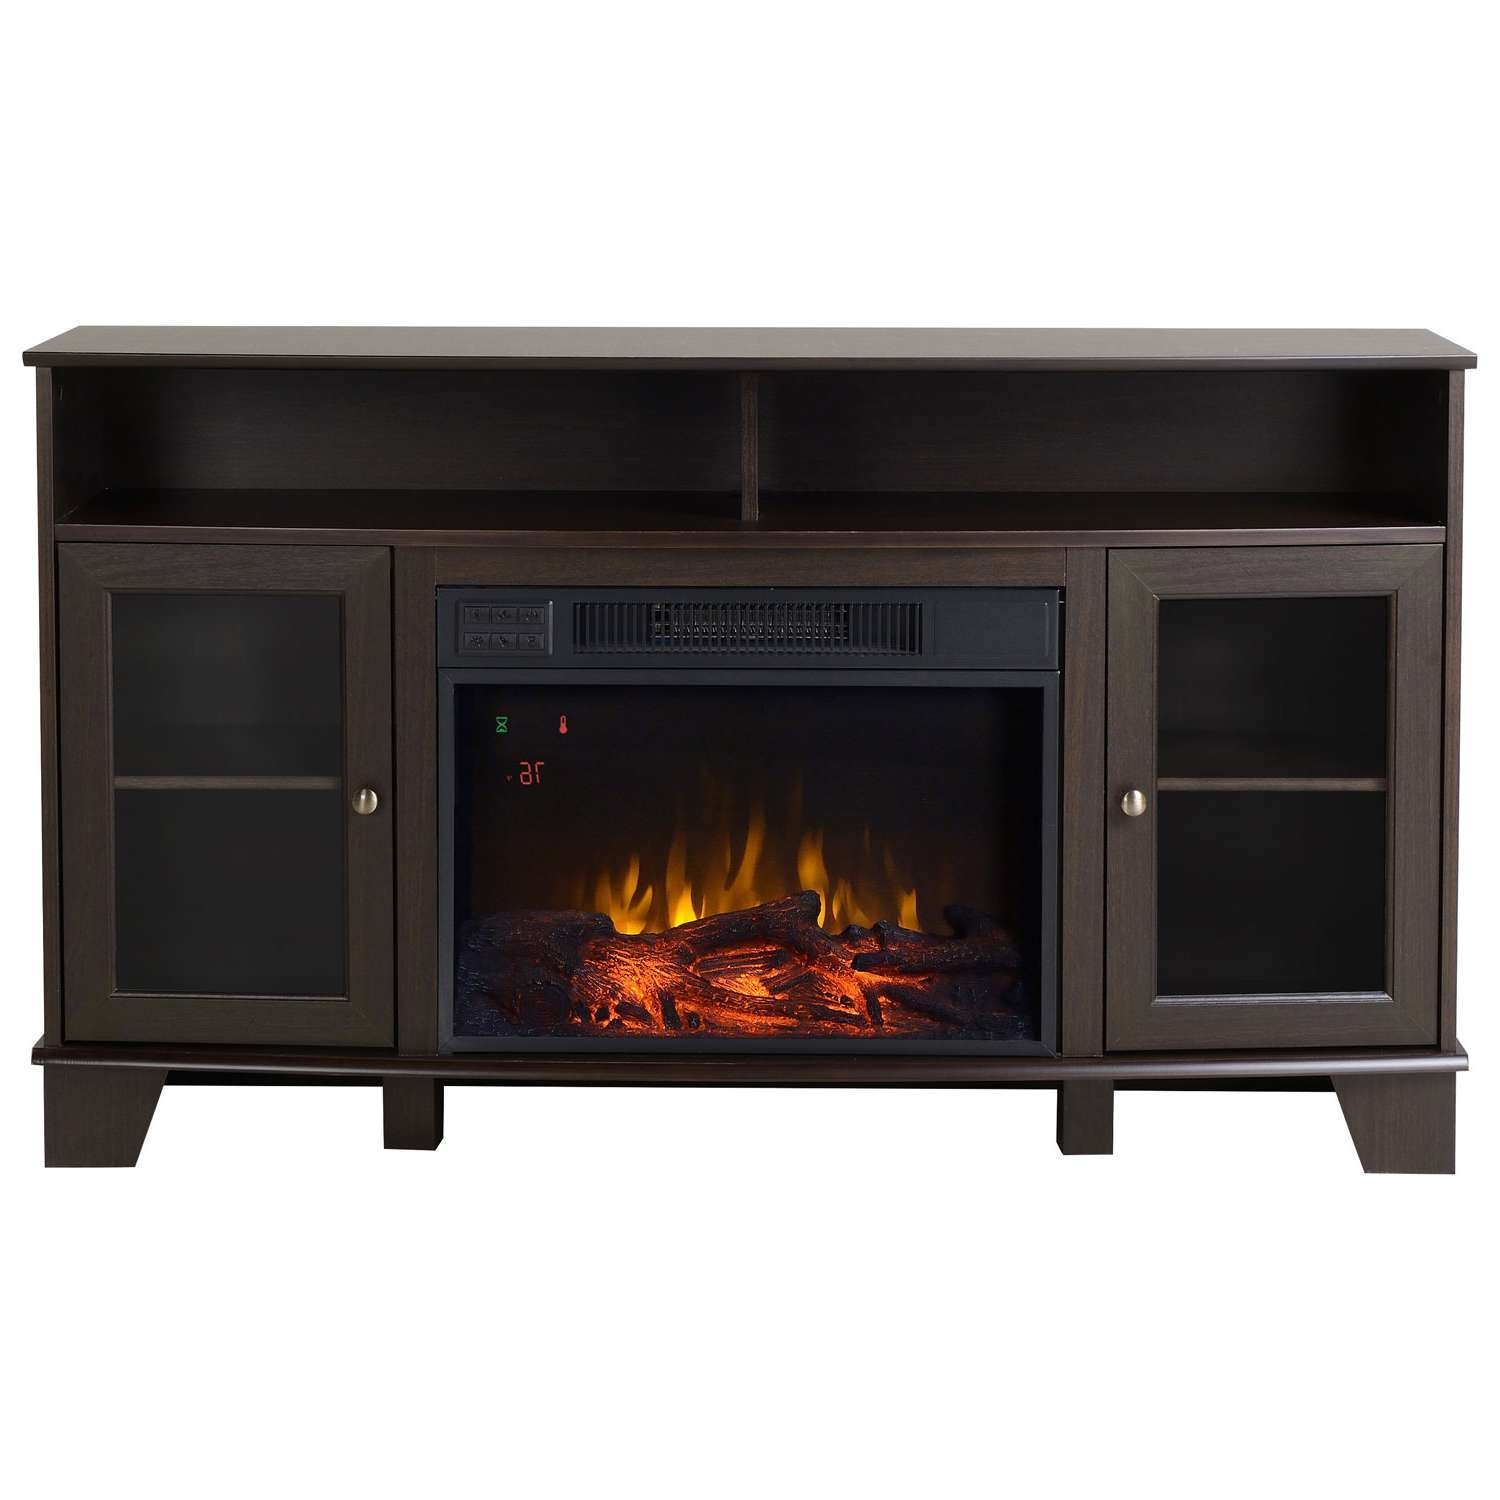 Tv Stands – Corner & Fireplace Tv Stands – Best Buy Canada Throughout Tv Stands 38 Inches Wide (View 15 of 15)